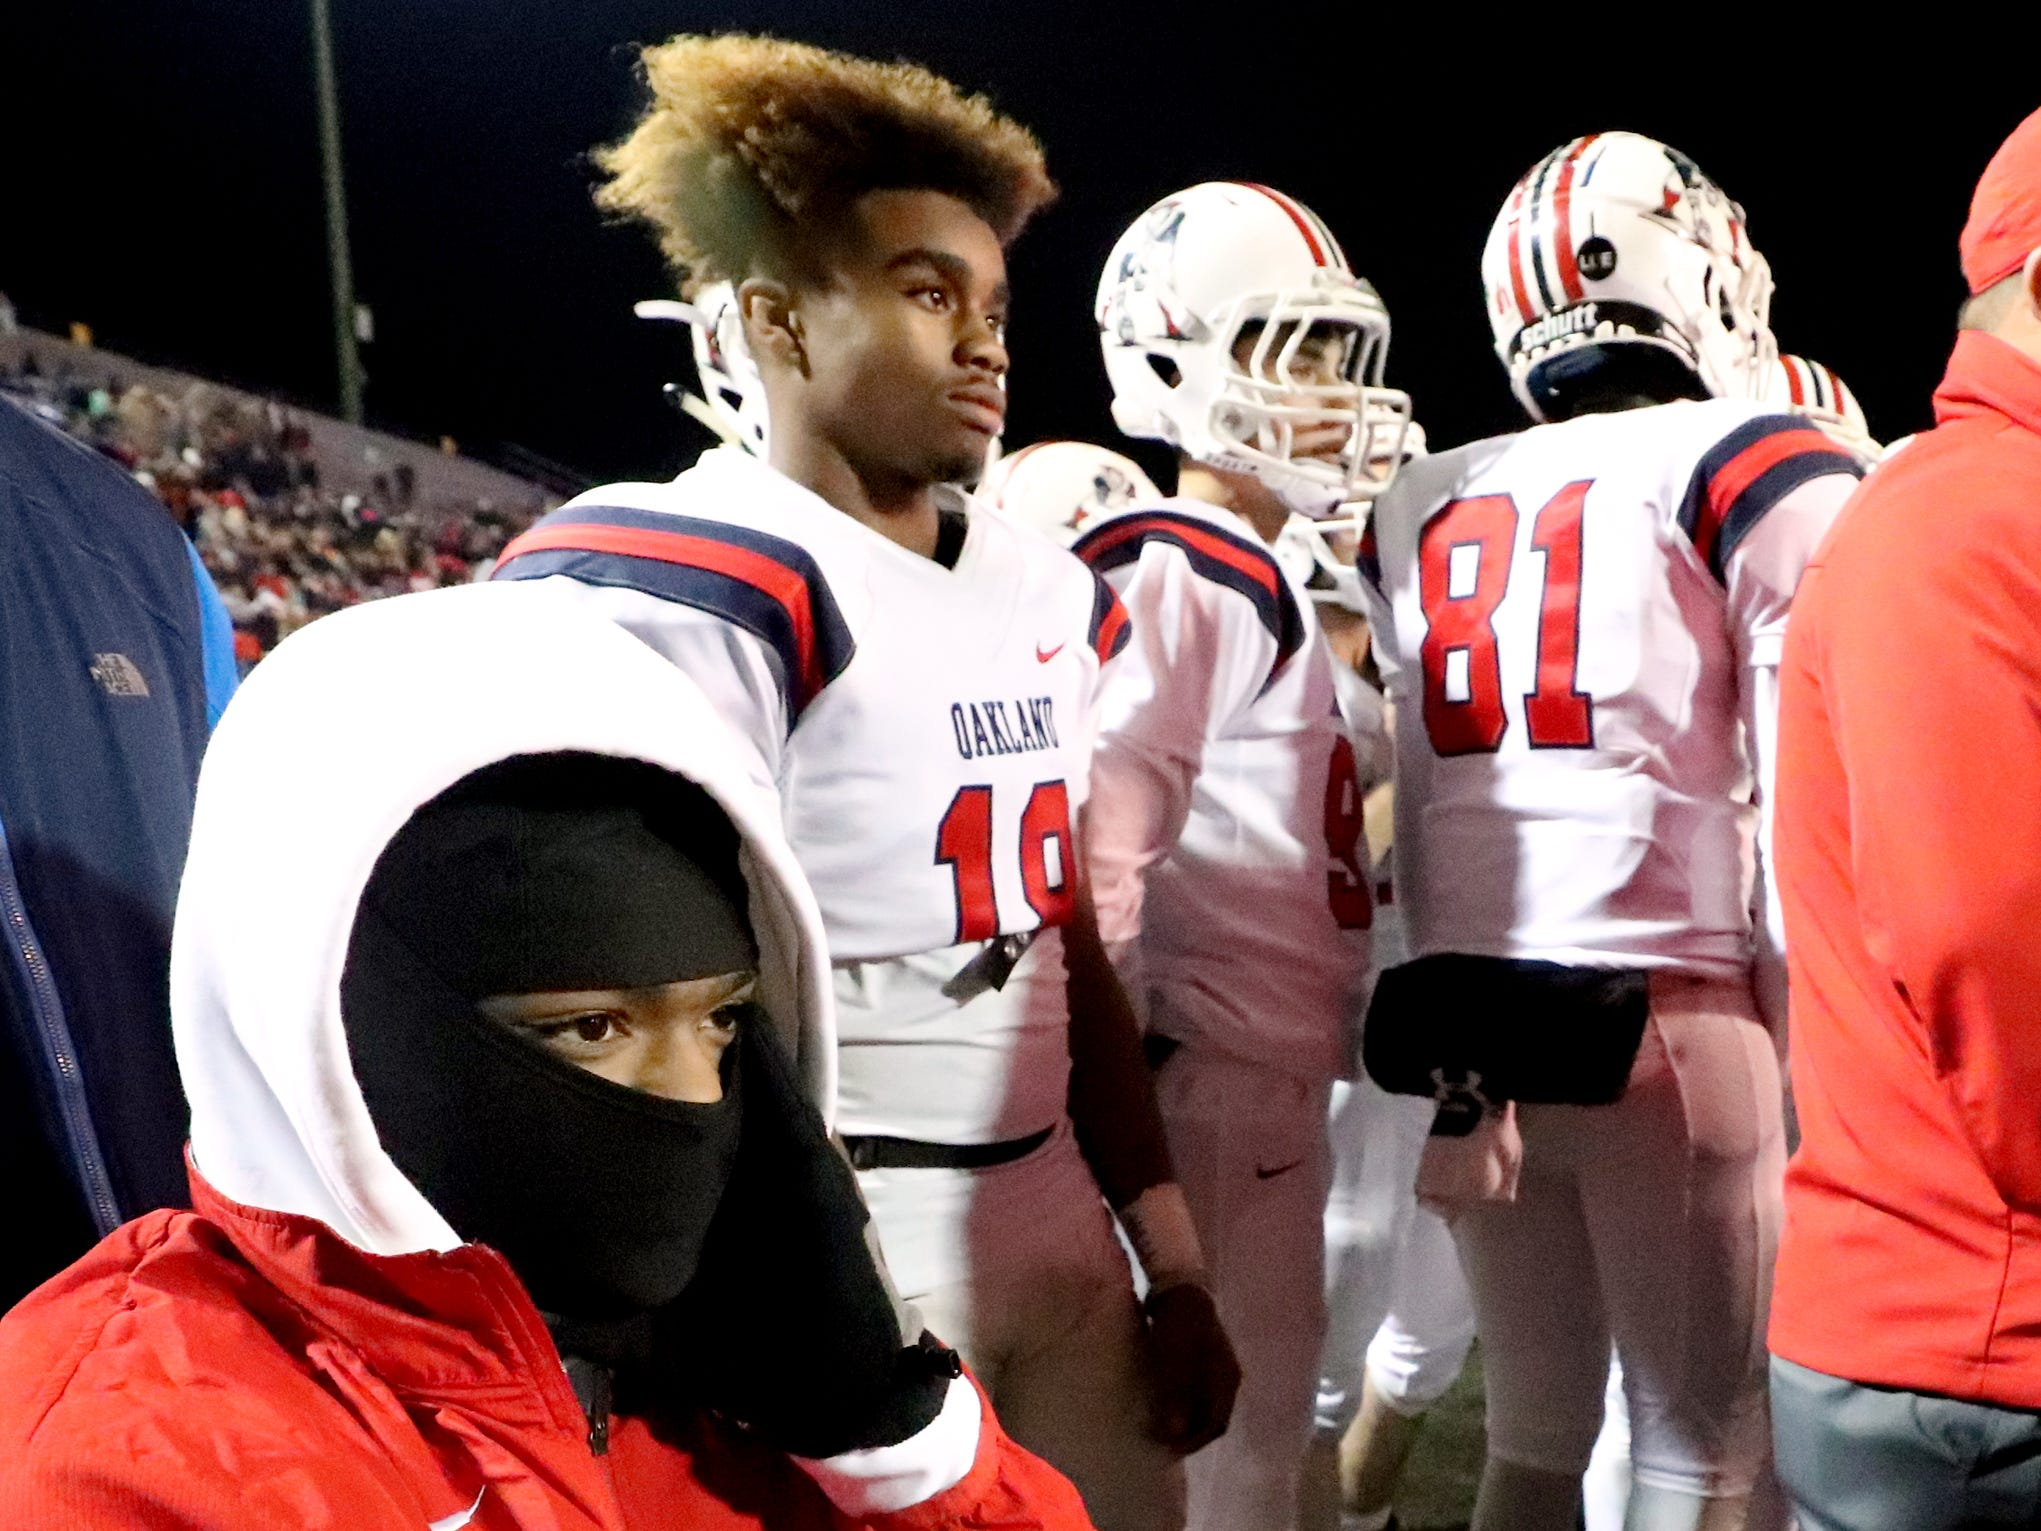 Oakland's Jalen Locklayer (3) on the sidelines with the team during the 6A State Championship BlueCross Bowl game against Whitehaven, on Thursday, Nov. 29 2018.